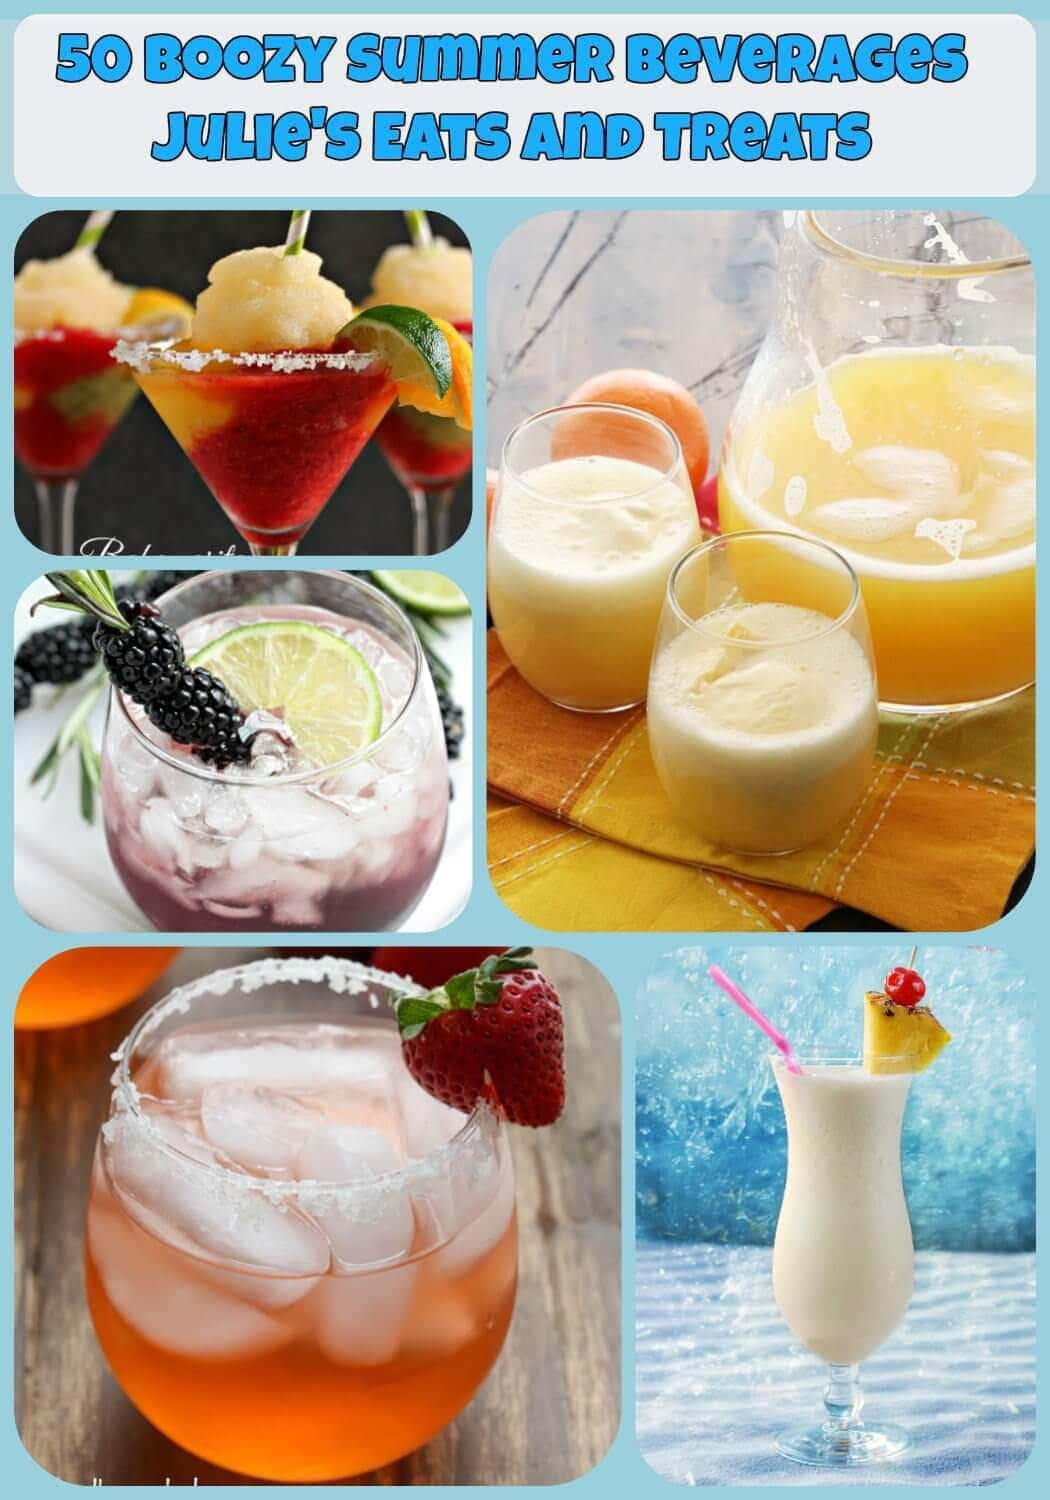 50 Boozy Summer Beverages ~ Enjoy the summer with a cold drink in hand! Recipes for everything from Pina Colada to Sangria to Lemonade all spiked with alcohol of course!